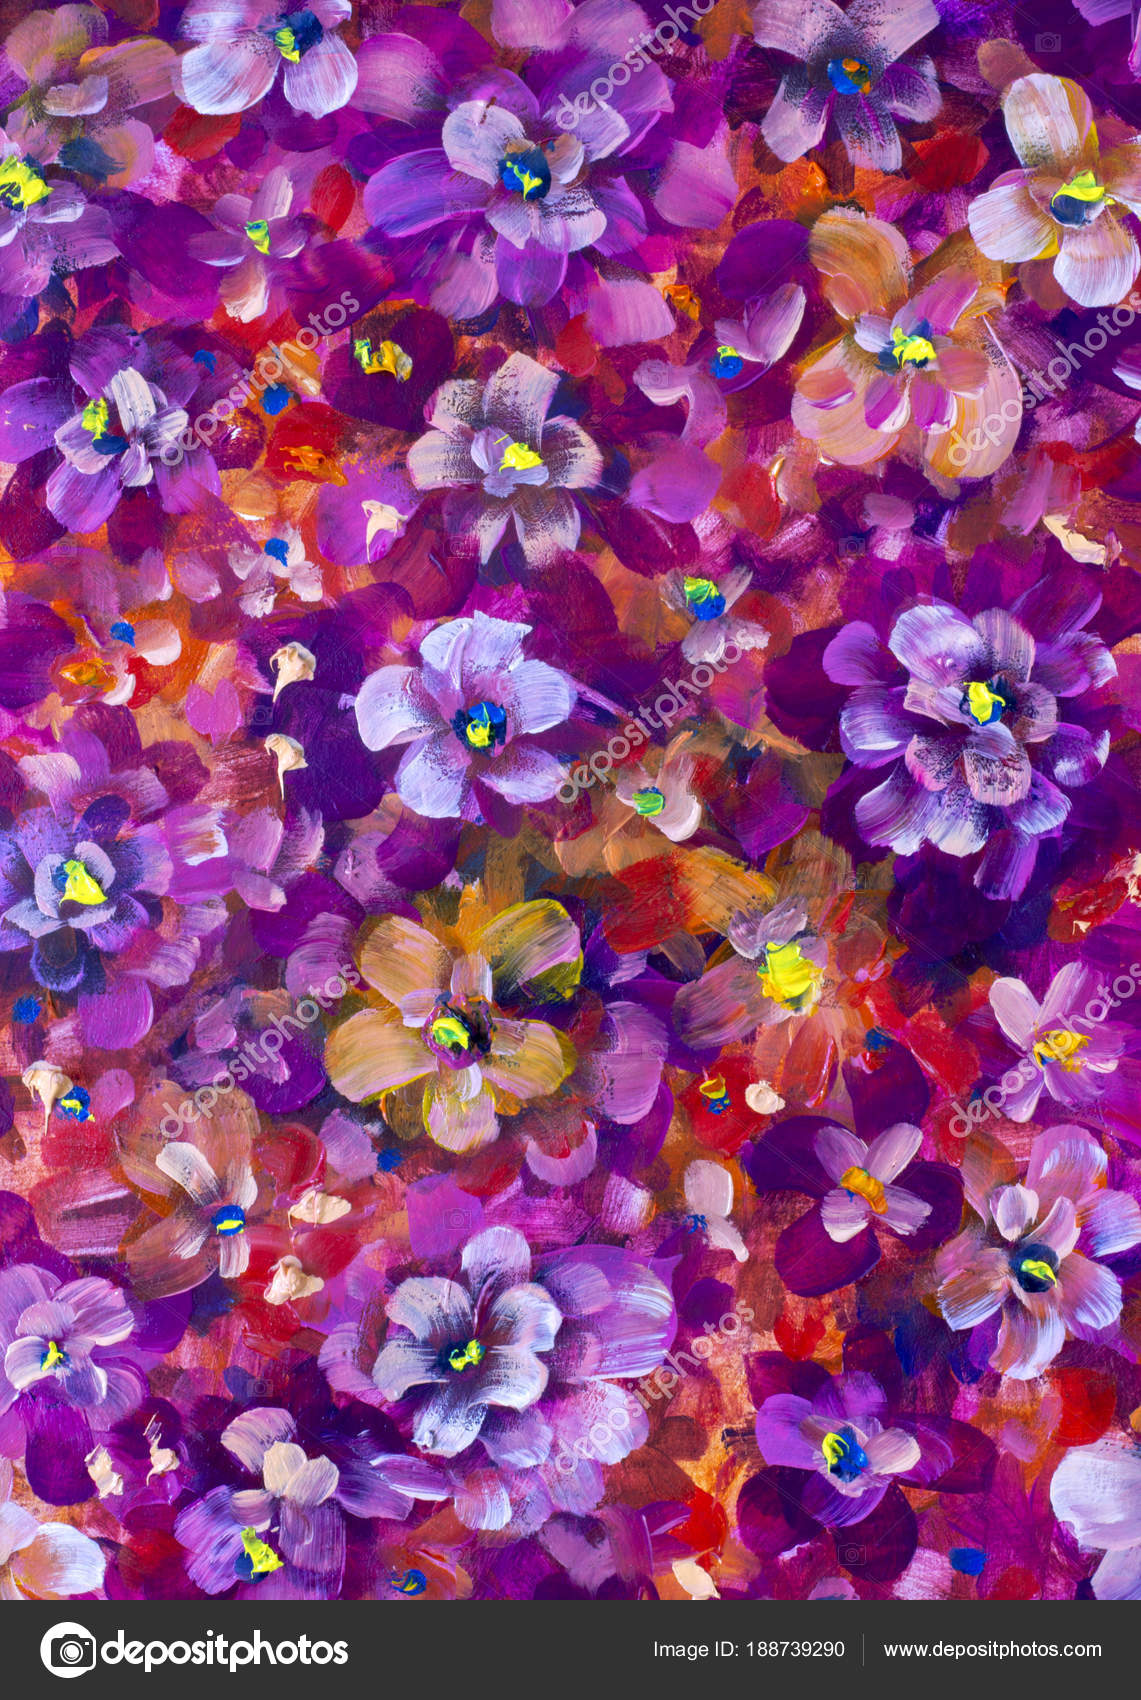 Red Violet Flowers Pansy Violet Close Oil Painting Abstract Orange Stock Photo C Weris7554 188739290